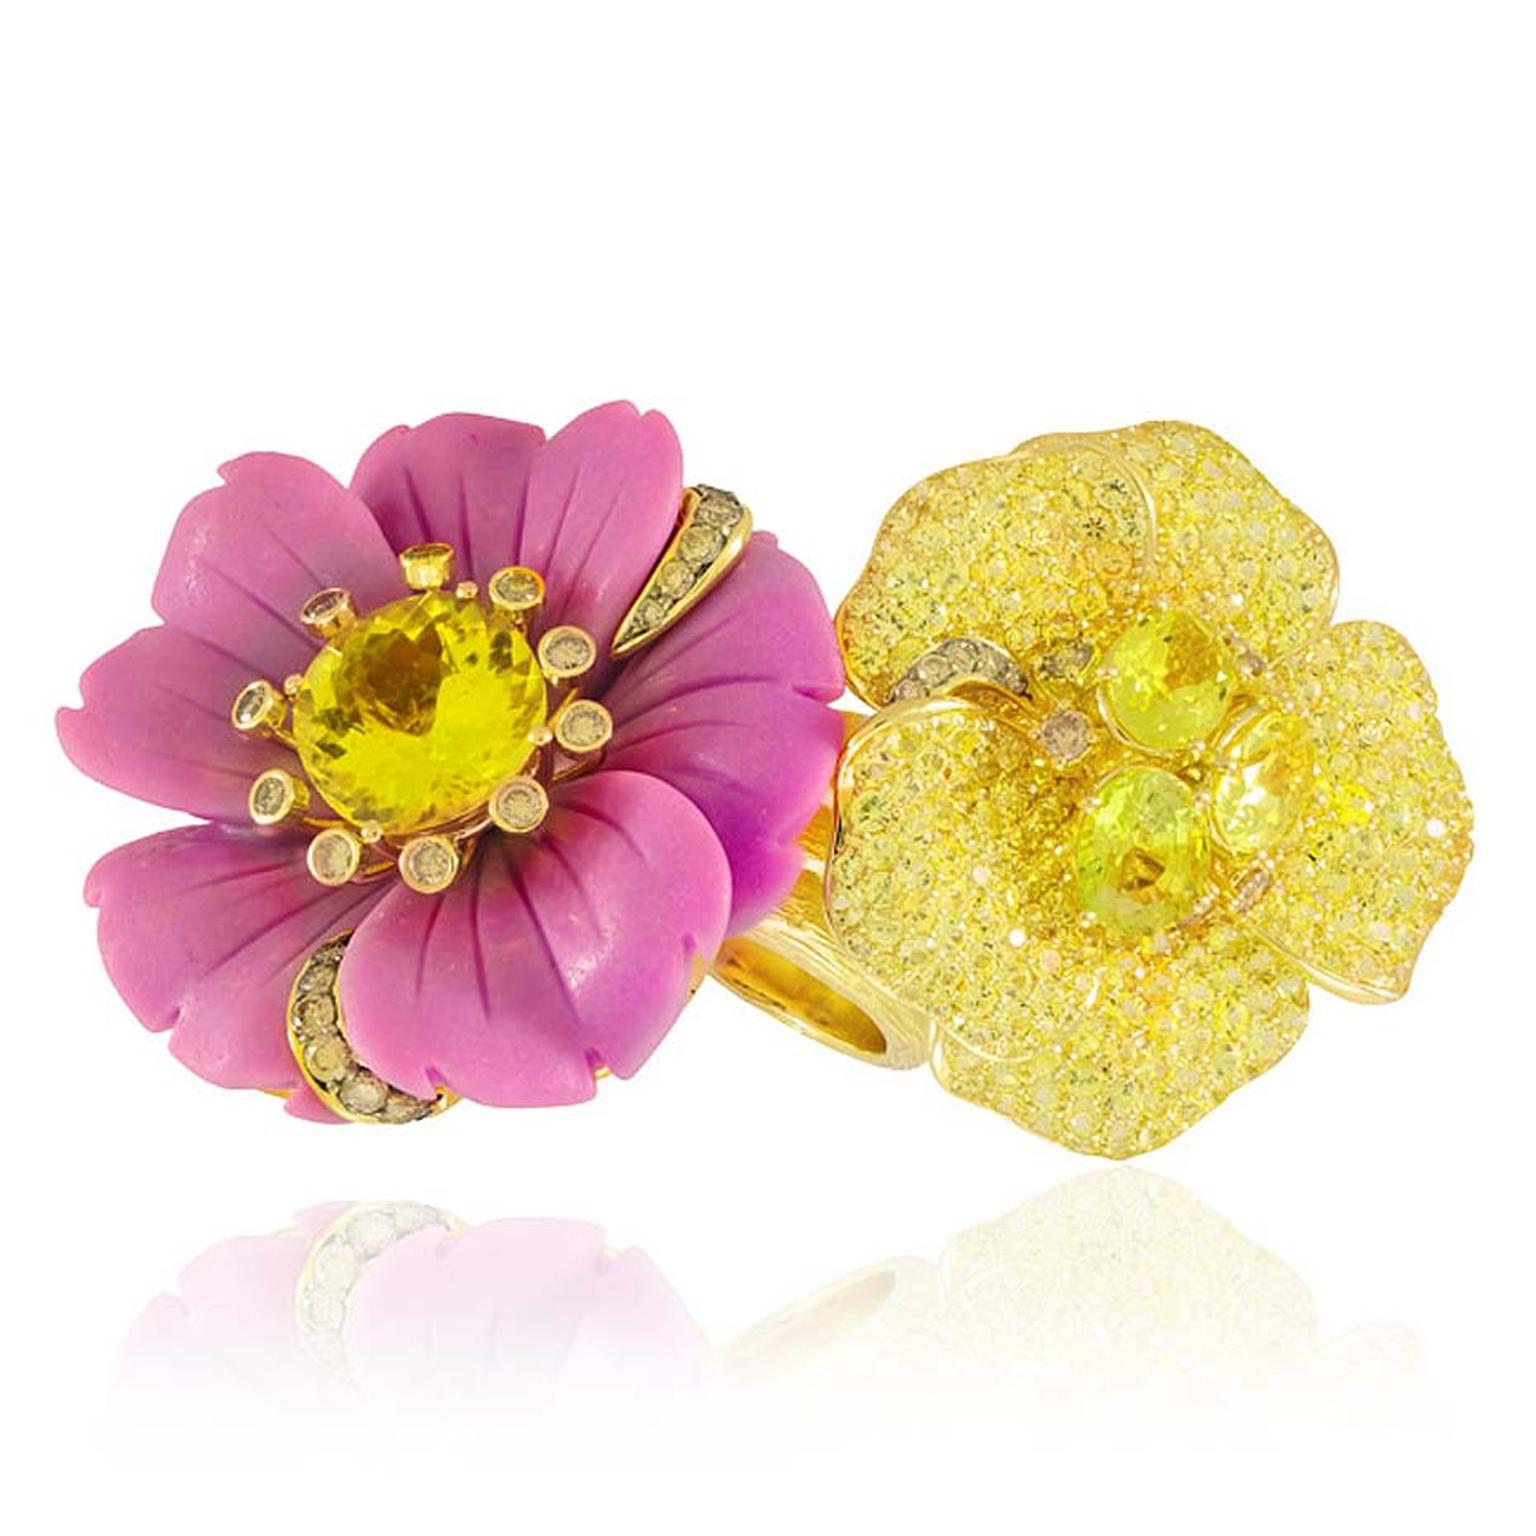 Lydia Courteille's Sweet and Sour double flower cocktail ring features two flowers, one featuring a rare Chilean phosphosiderite, the other in yellow gold and pavé set with topaz and sapphires. €17,500.